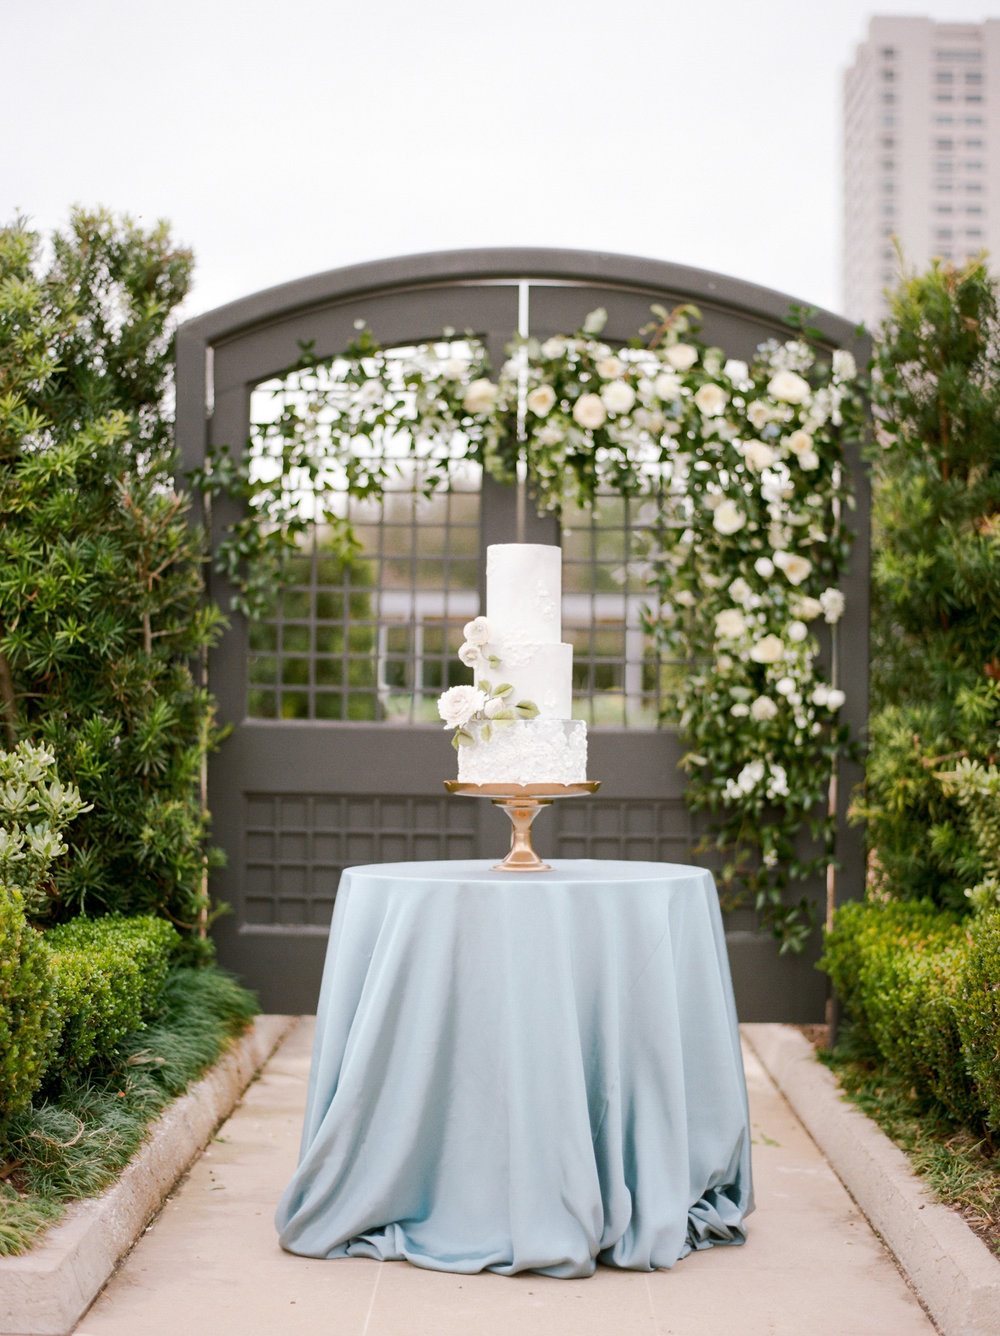 McGovern-Centennial-Gardens-Houston-Texas-Wedding-Venue-Josh-Dana-Fernandez-Photography-Film-Destination-Fine-Art-Luxury-Top-Best-Austin-Dallas-Magnolia-Rouge-Jennifer-Laura-Design-212.jpg